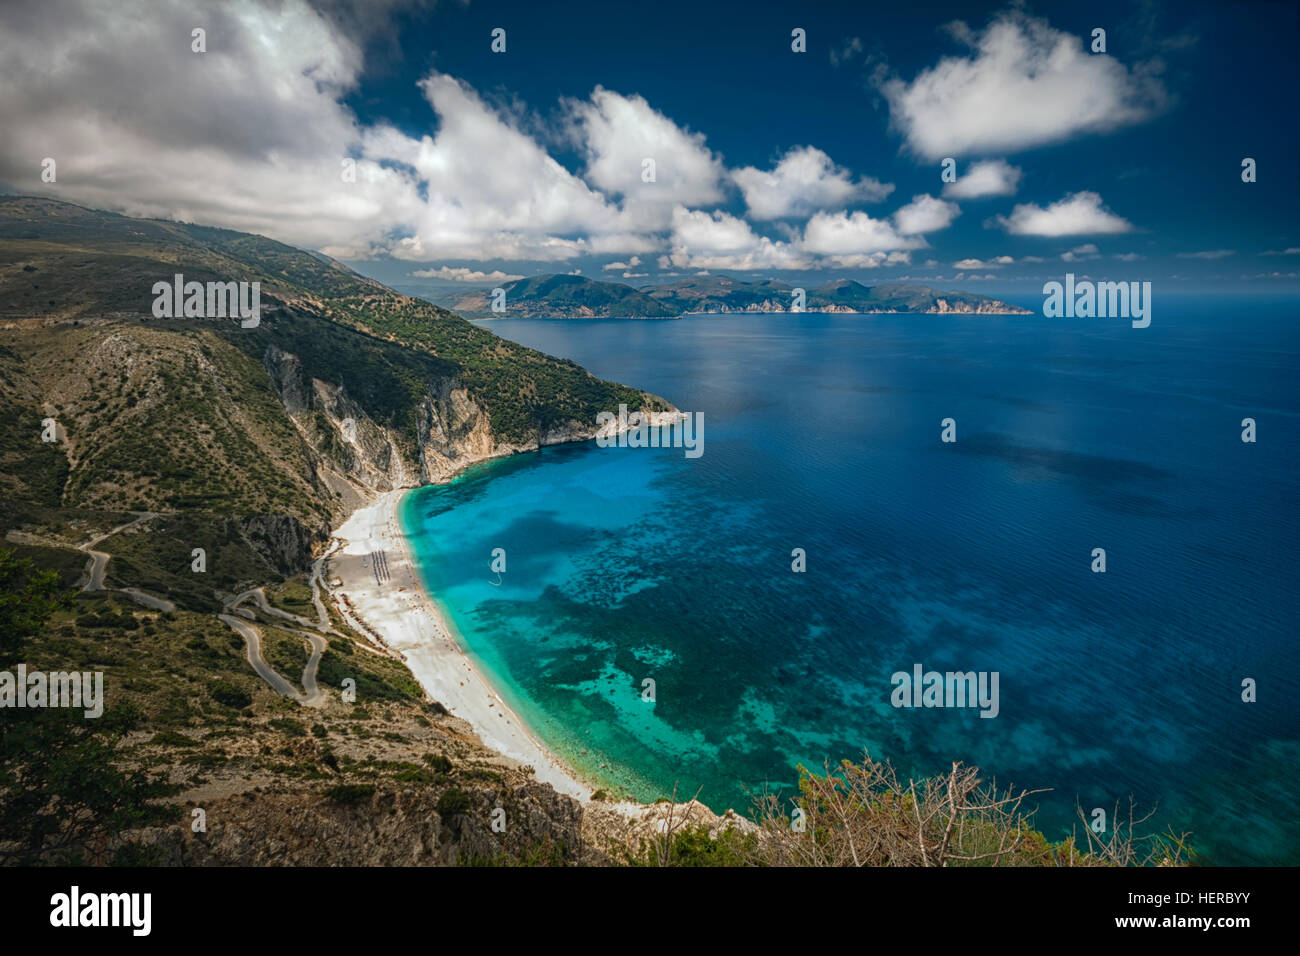 The famous Myrtos beach in Kefalonia - Stock Image